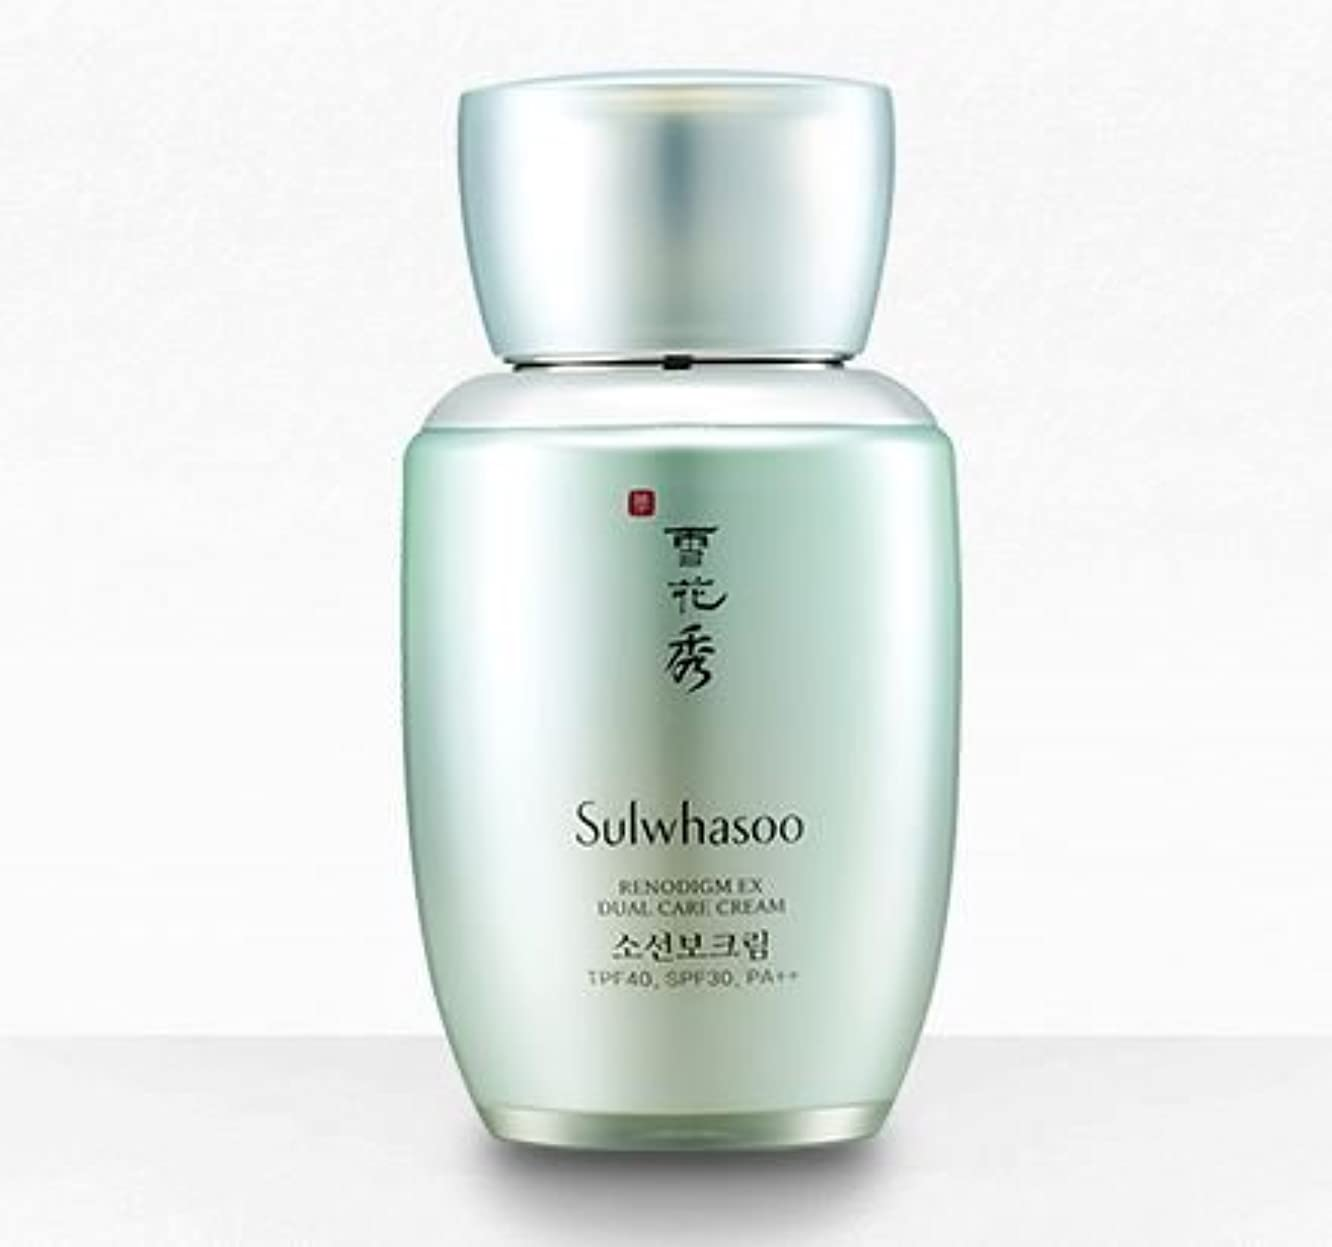 ご予約ガム挽く[Sulwhasoo] Renodigm EX Dual Care Cream 50ml [並行輸入品]